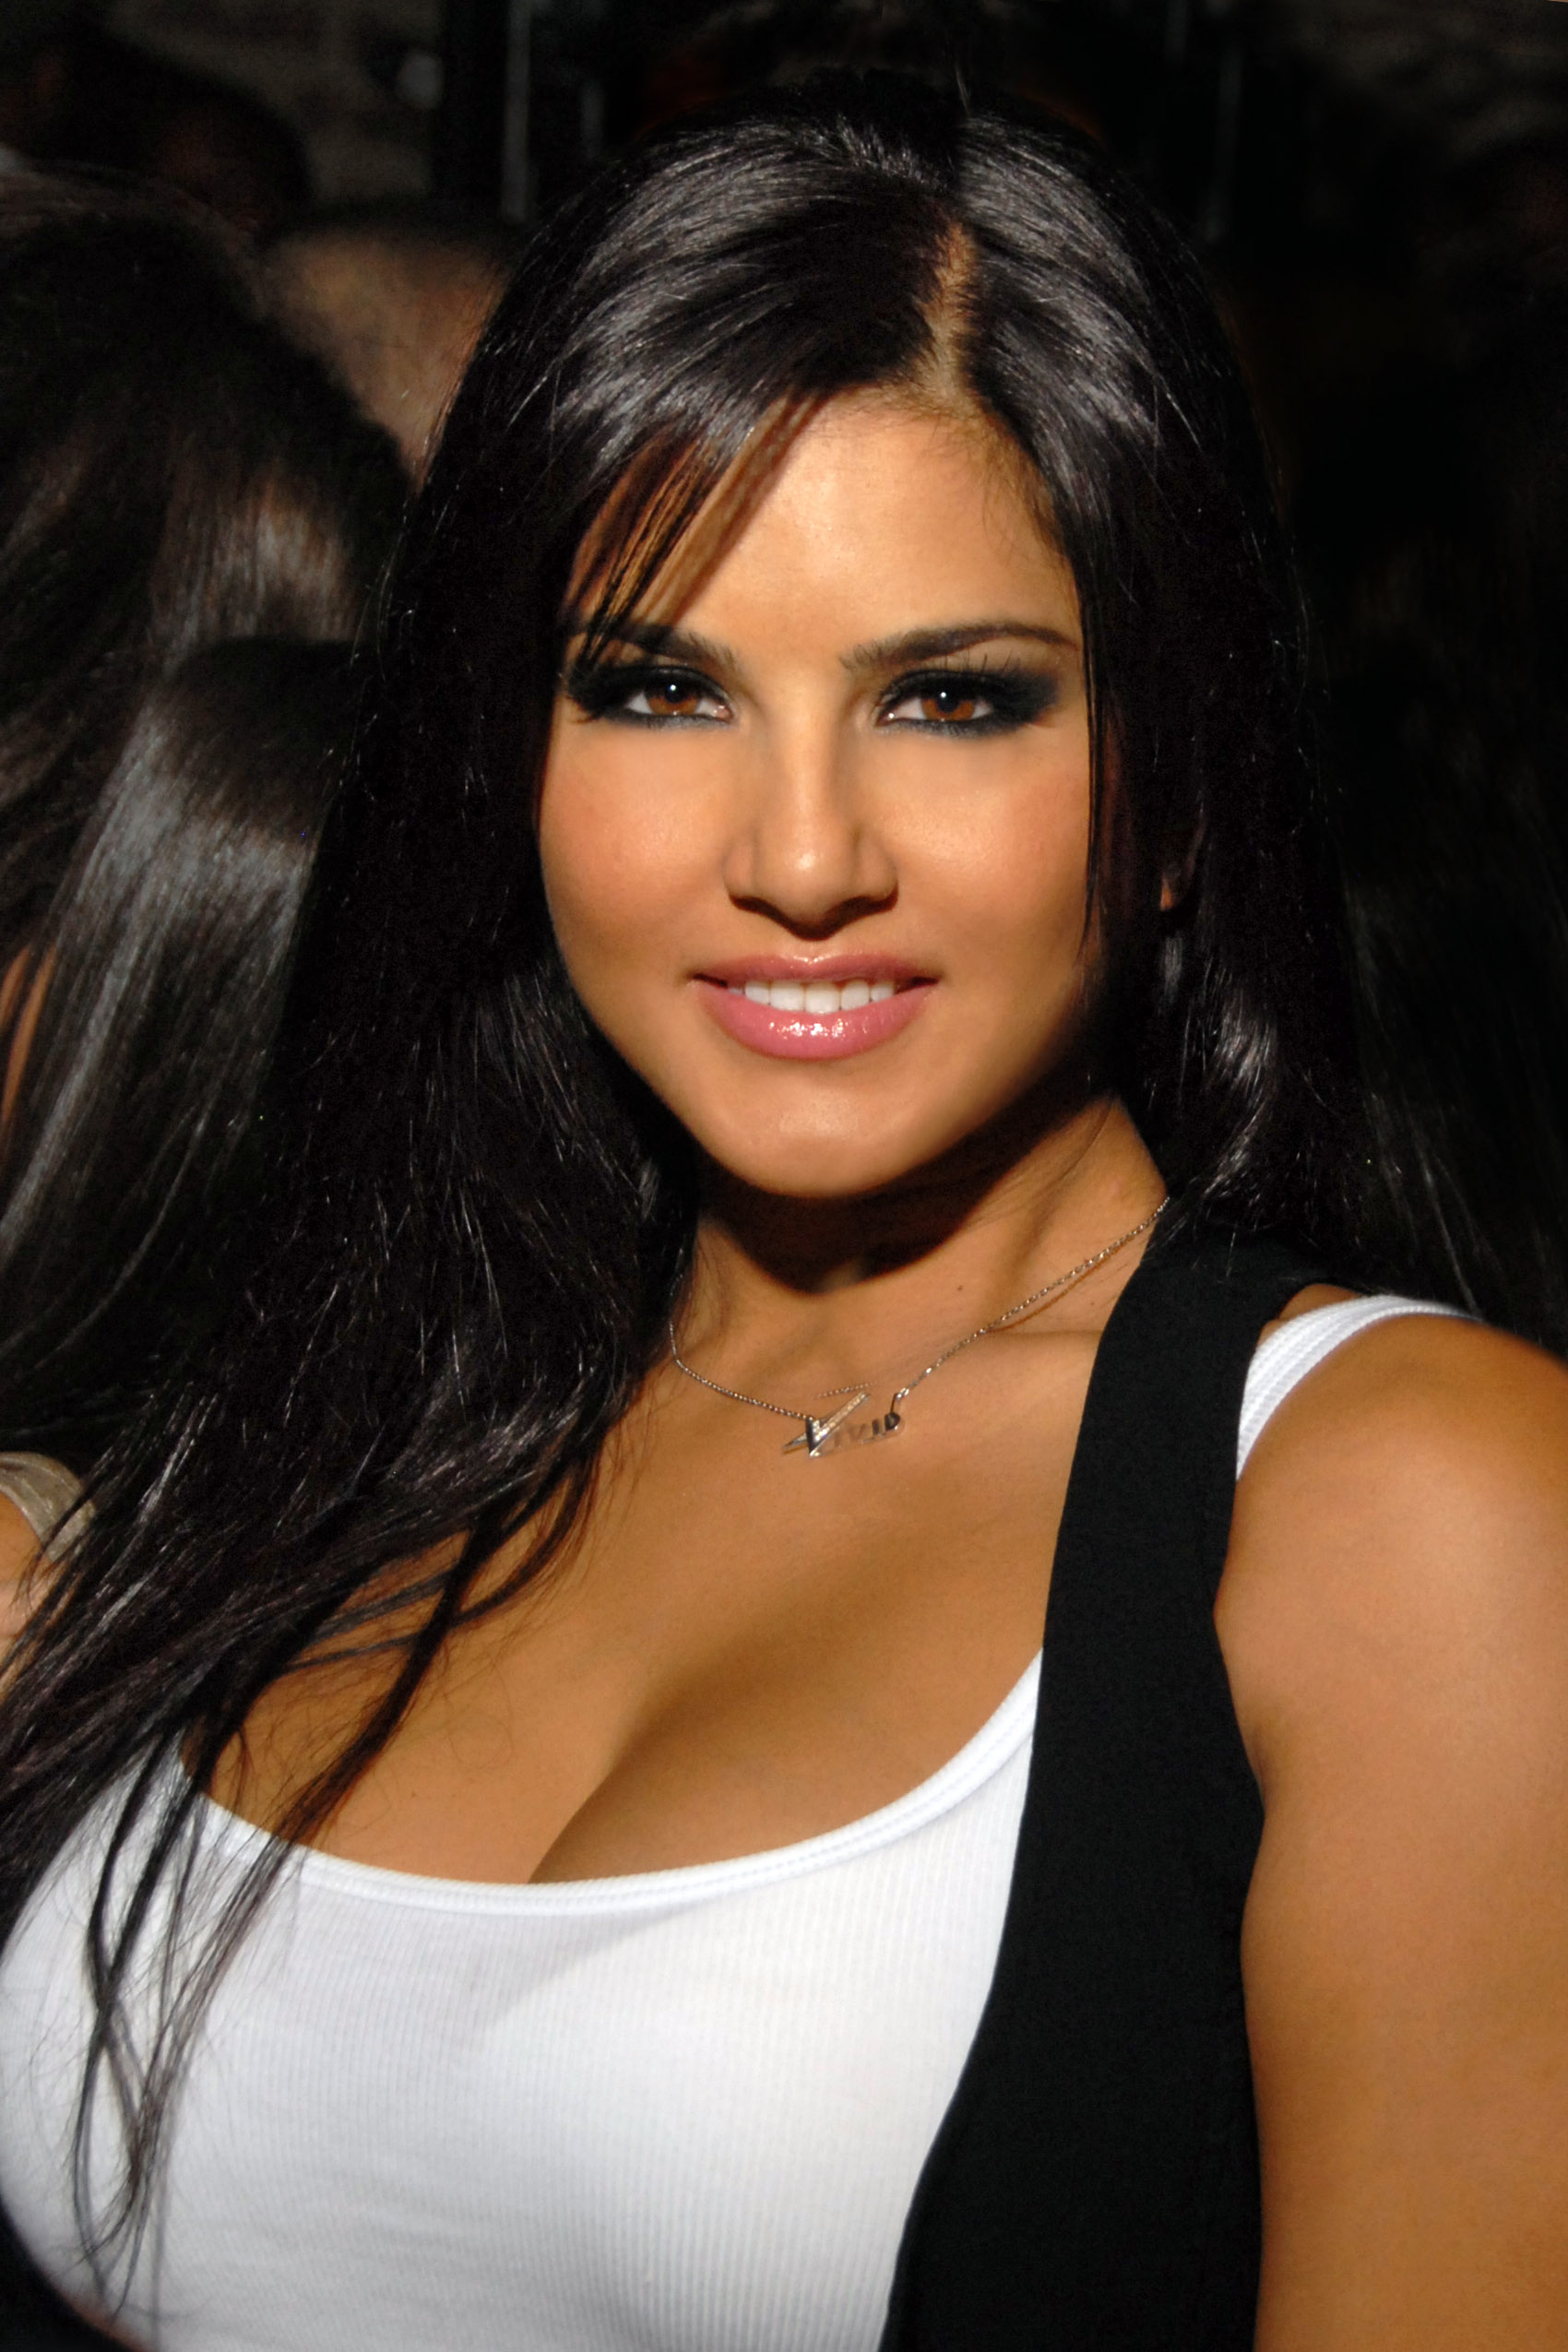 Description Sunny Leone 2009.jpg